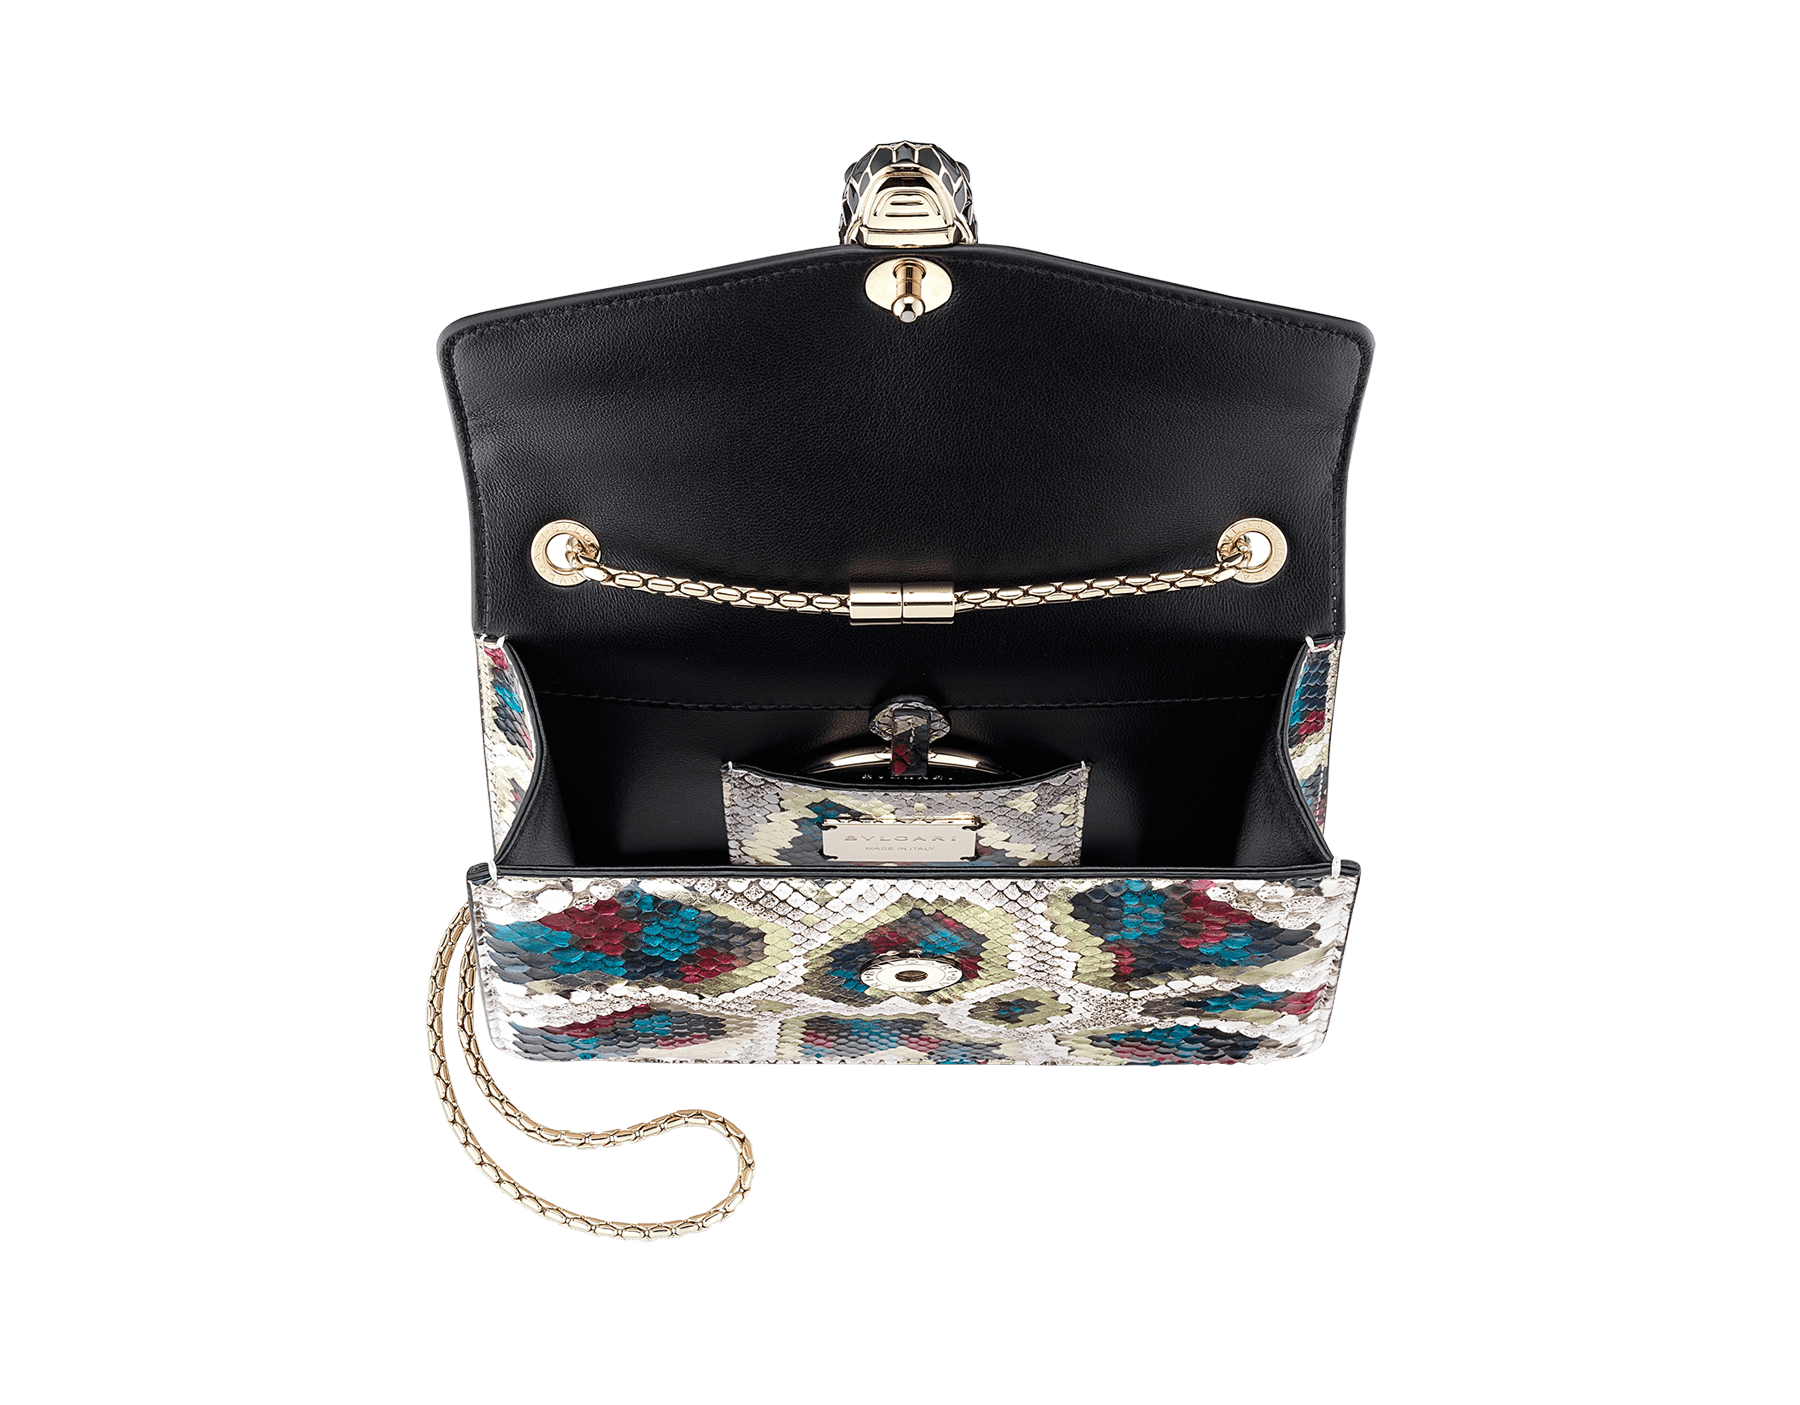 "Borsa a tracolla ""Serpenti Forever"" in pitone multicolore ""Magic Chromaline"". Iconica chiusura ""Serpenti"" in ottone placcato oro chiaro con squame in smalto bianco e nero e occhi in onice nera. 422-Pc image 4"